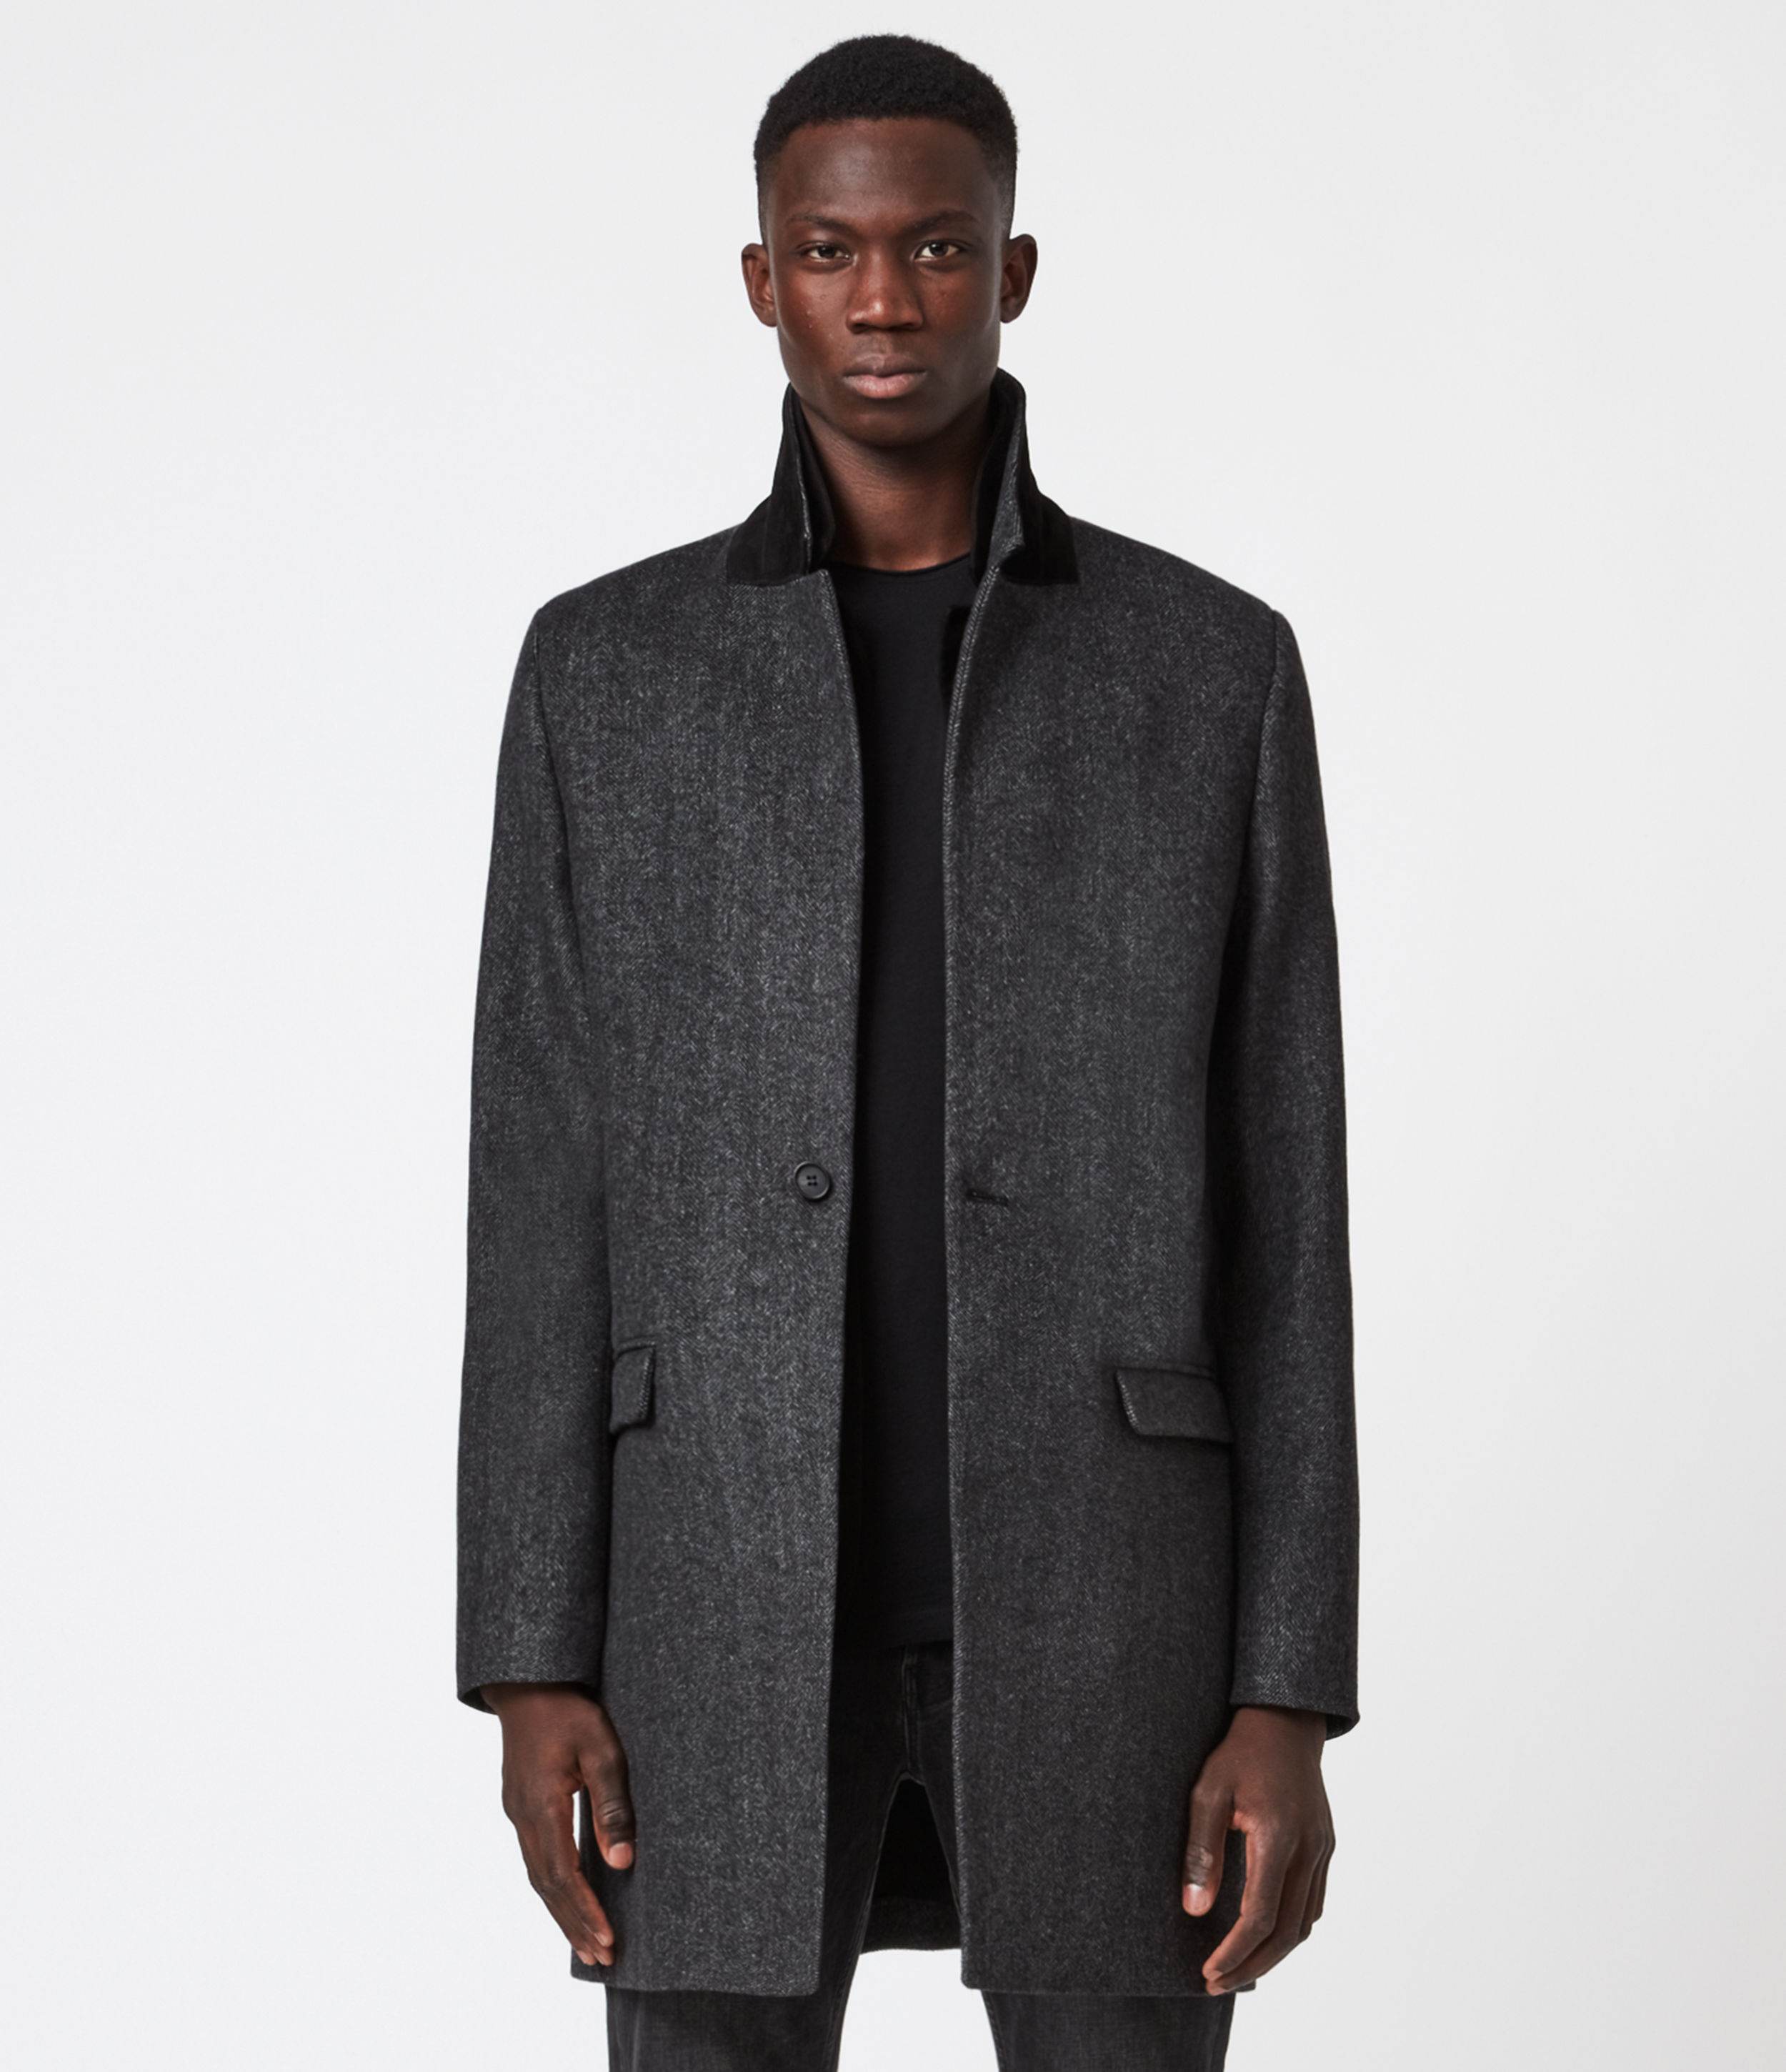 AllSaints Mens Morden Wool-Cashmere Blend Coat, Charcoal, Size: 38